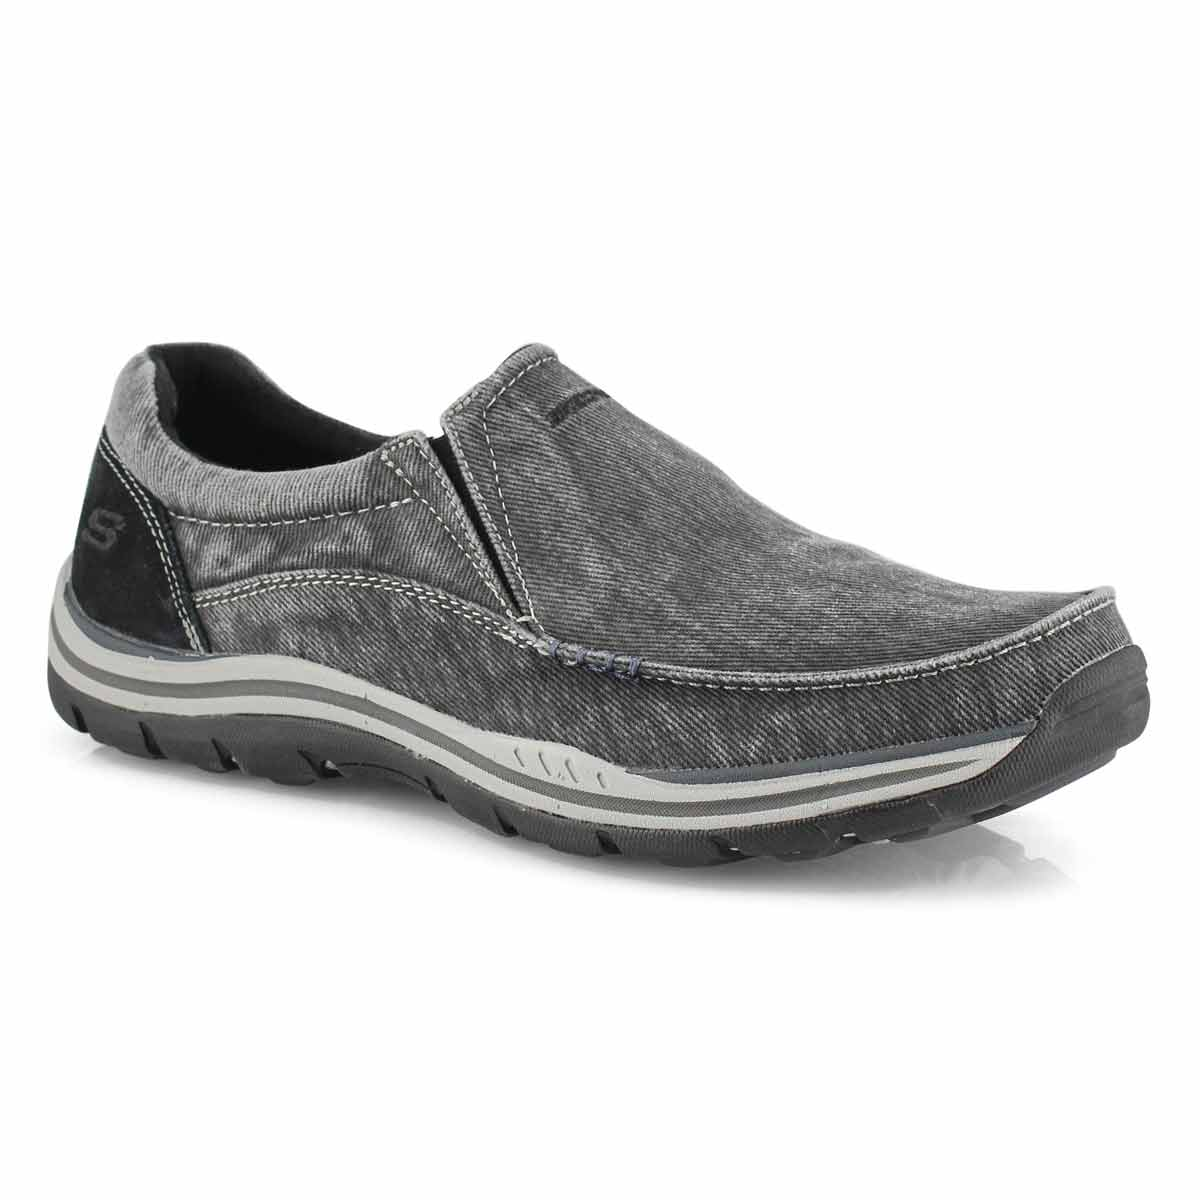 skechers liquidation